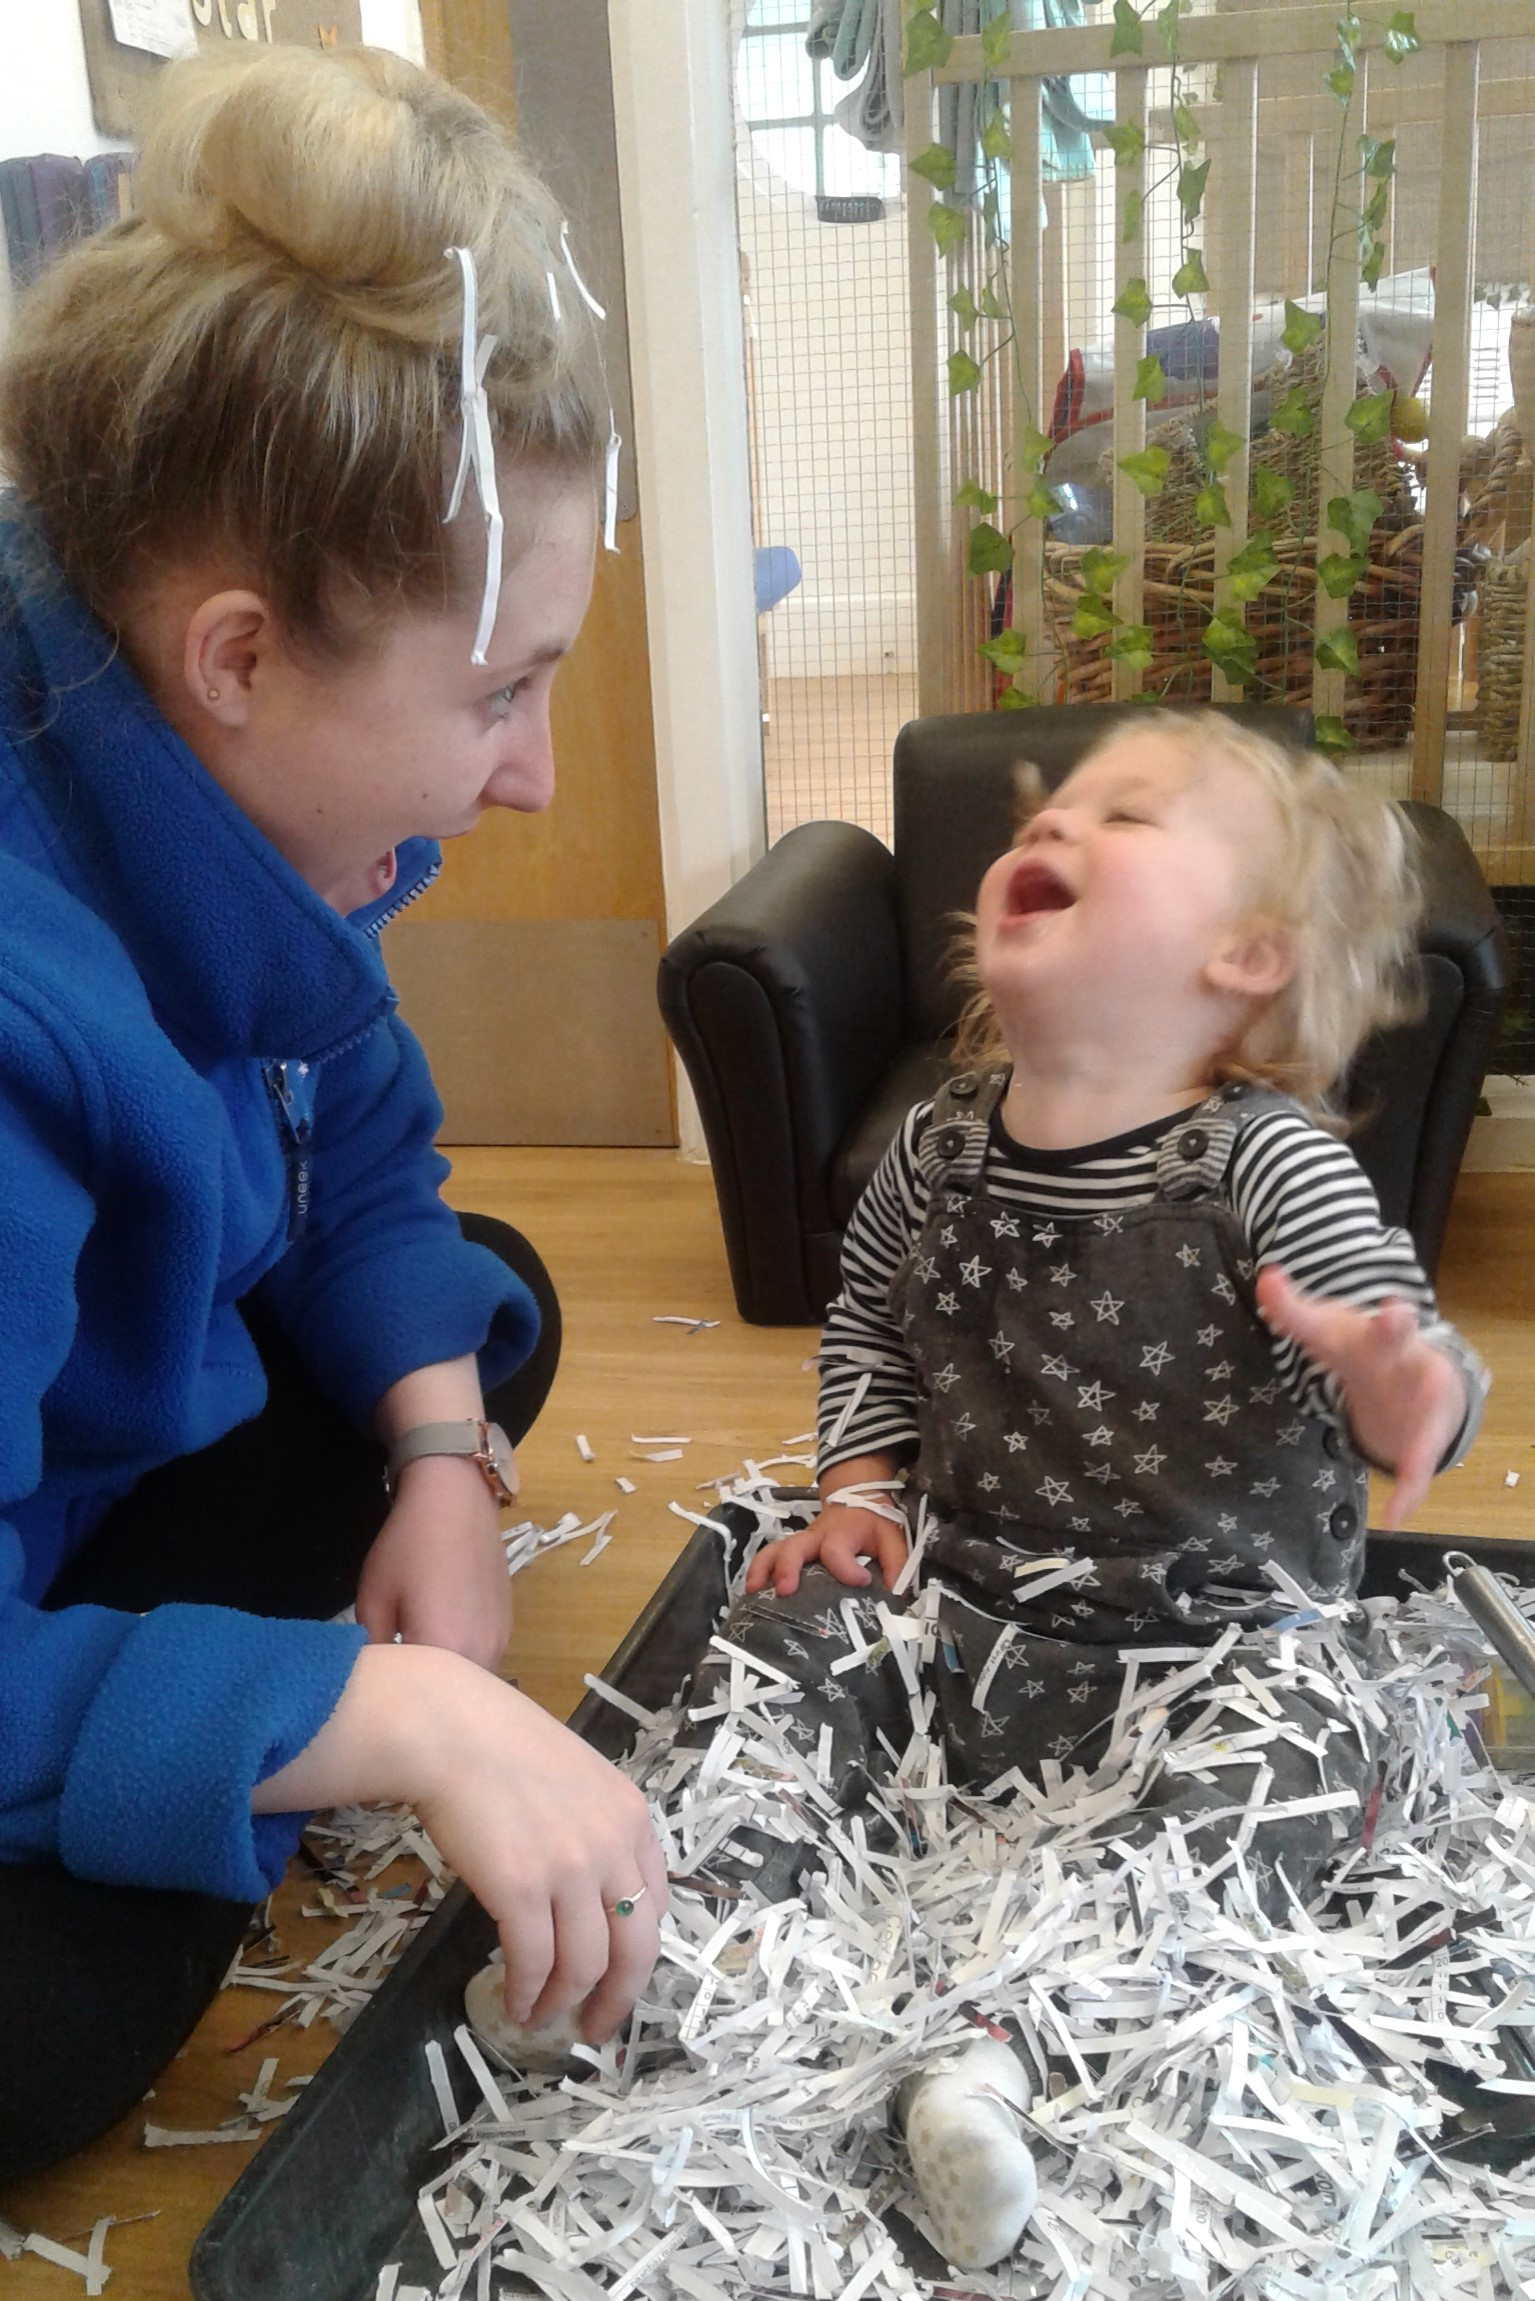 In the baby room, we have had so much fun exploring shredded paper!